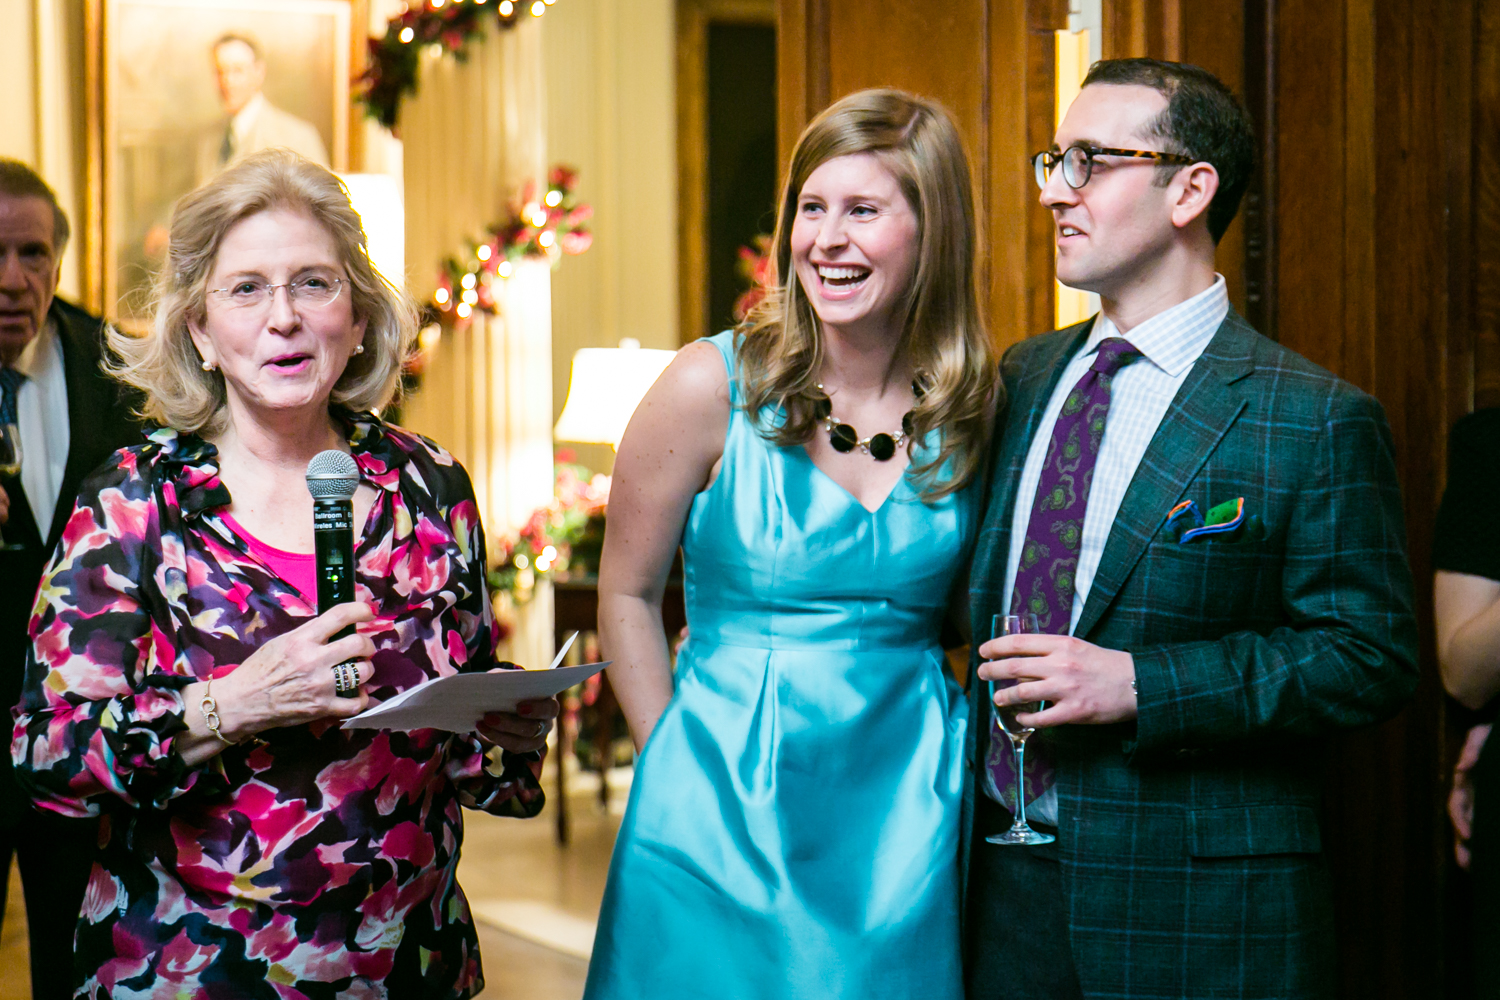 Mother of the groom making a speech in front of couple at a Lotos Club engagement party